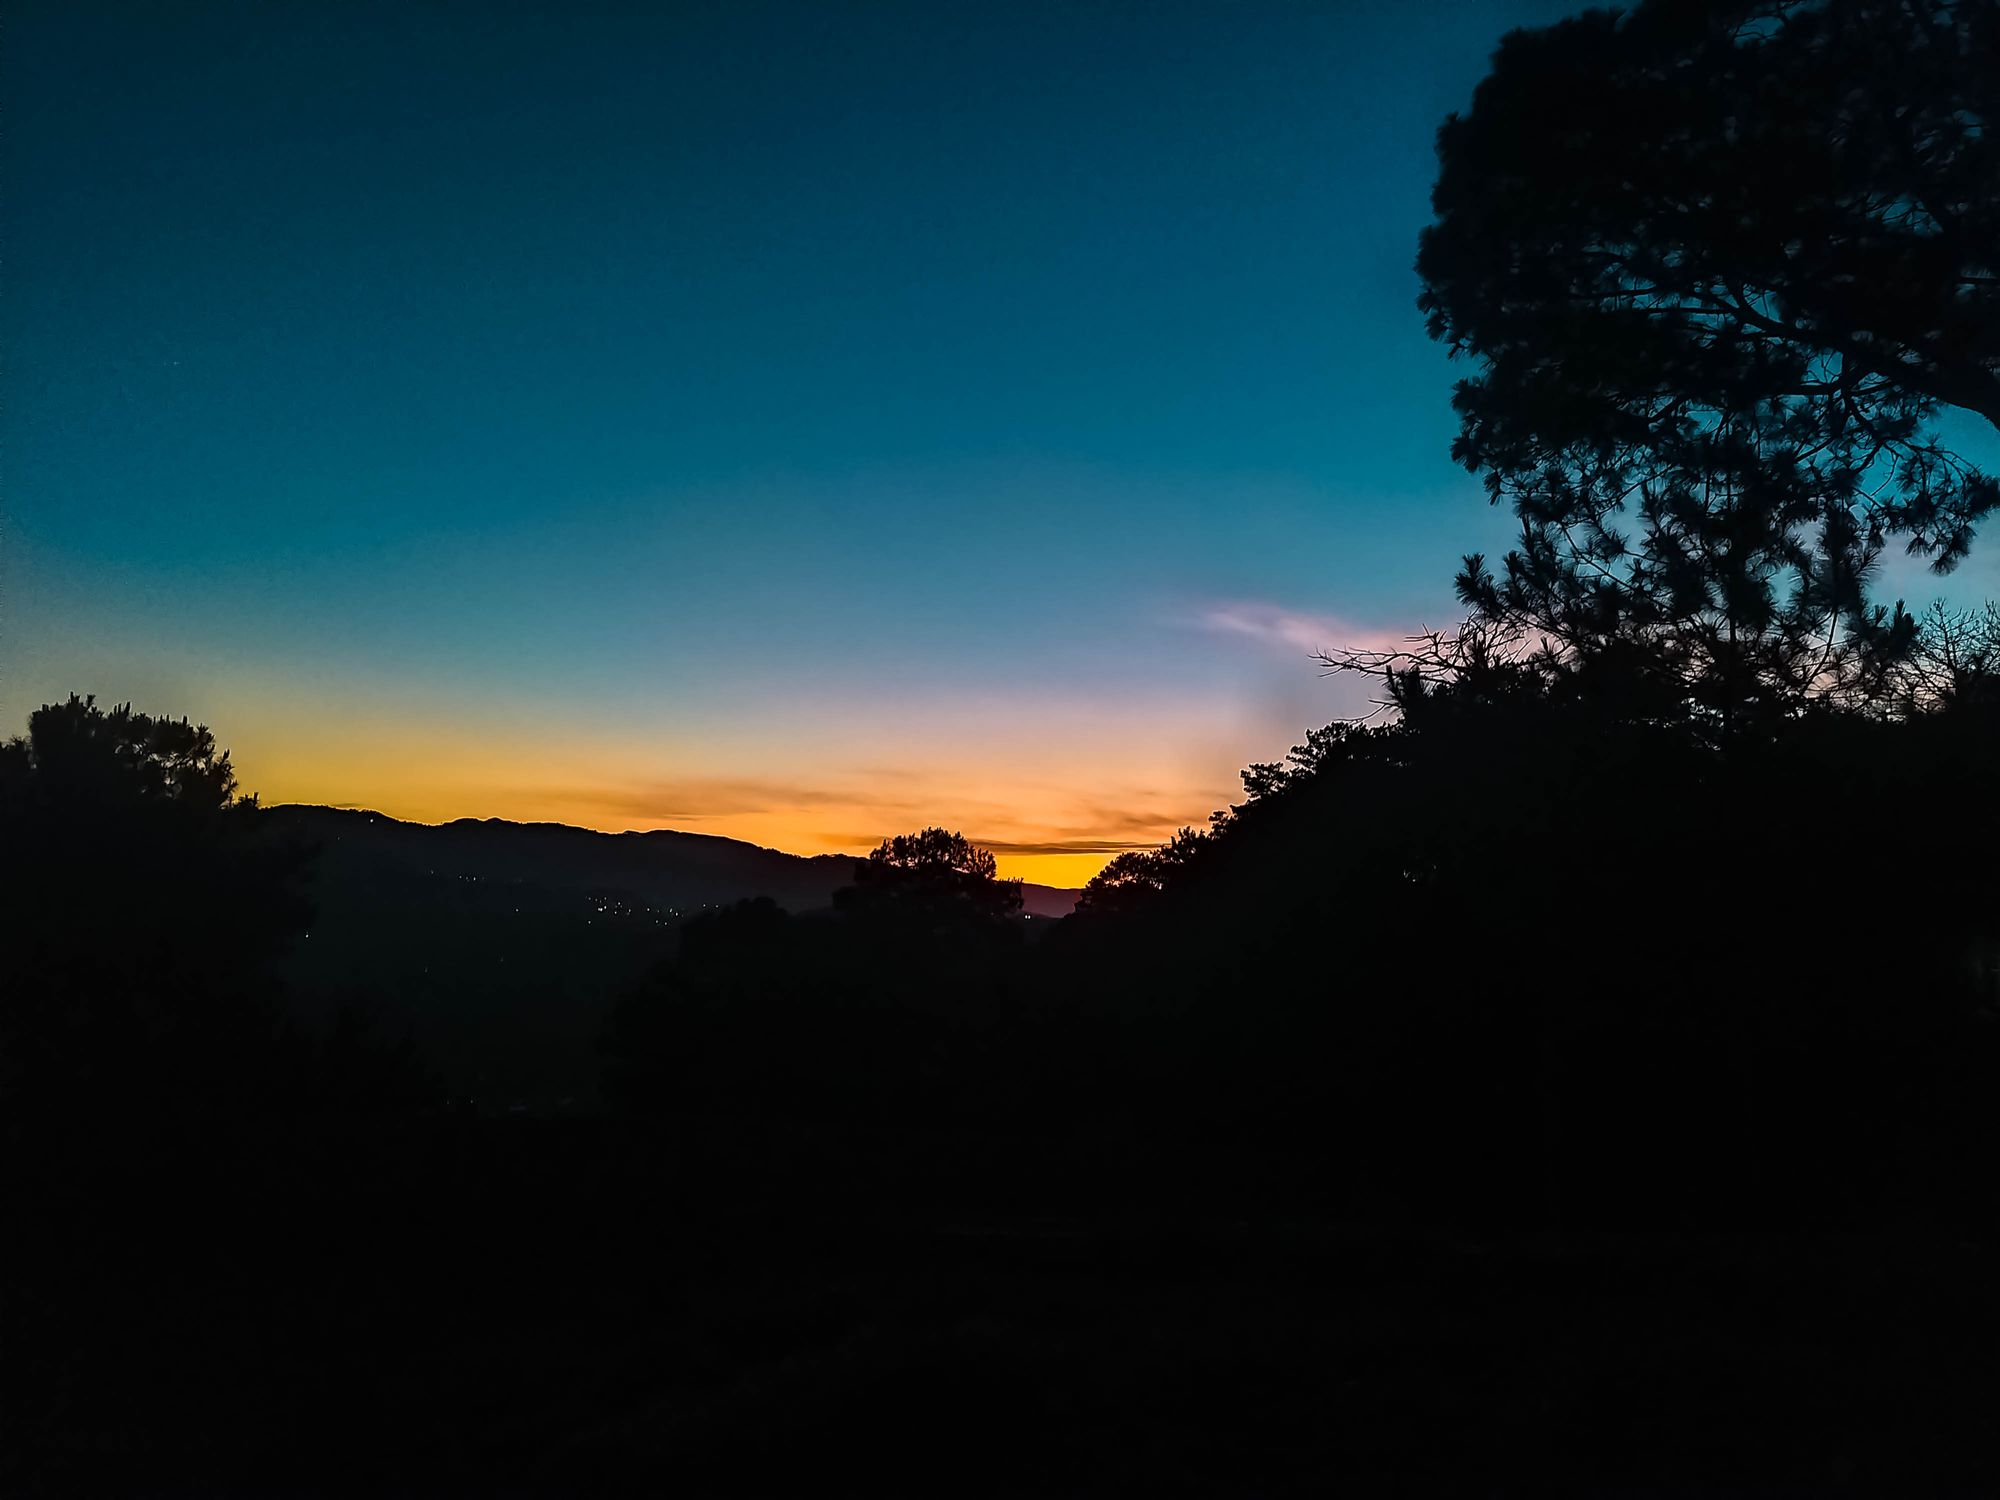 A picture of the dawn sky in blue, orange, yellow, and pink hues at Mount Kalugong